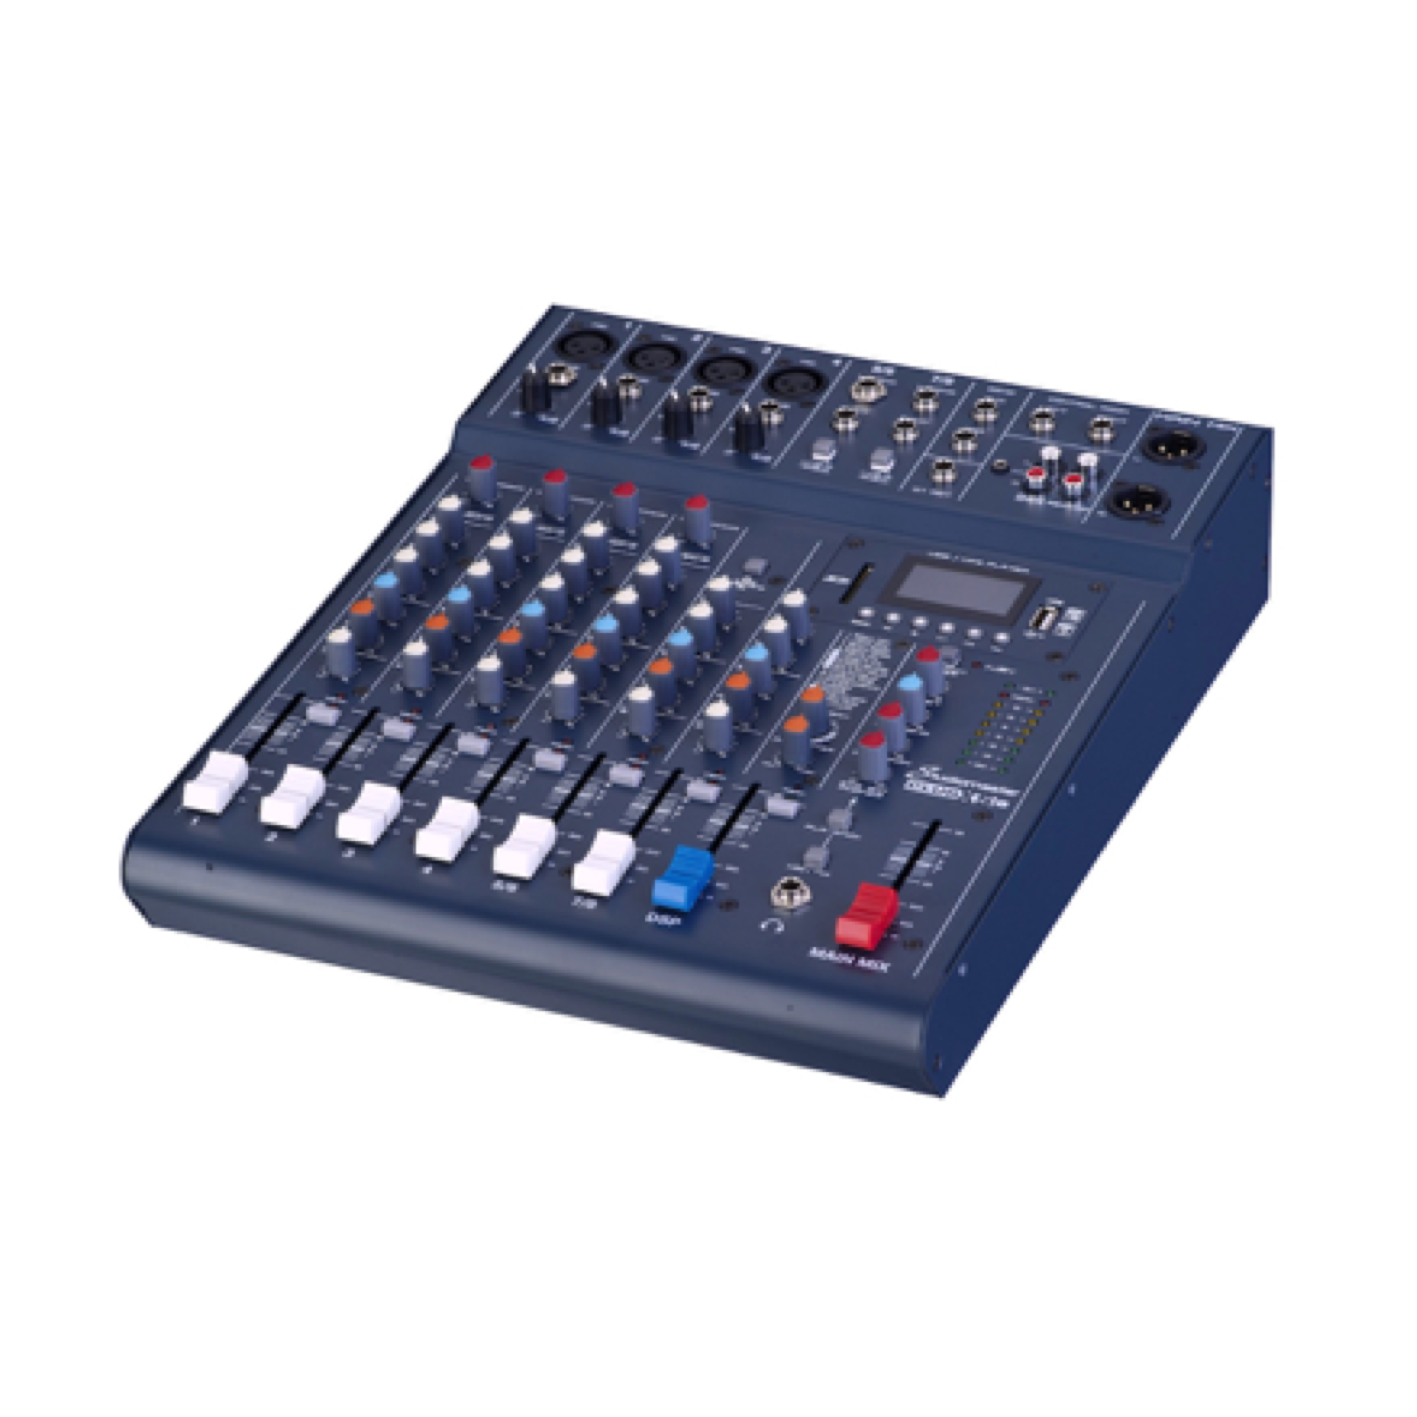 Studiomaster Club XS8 8 Channel Mixer